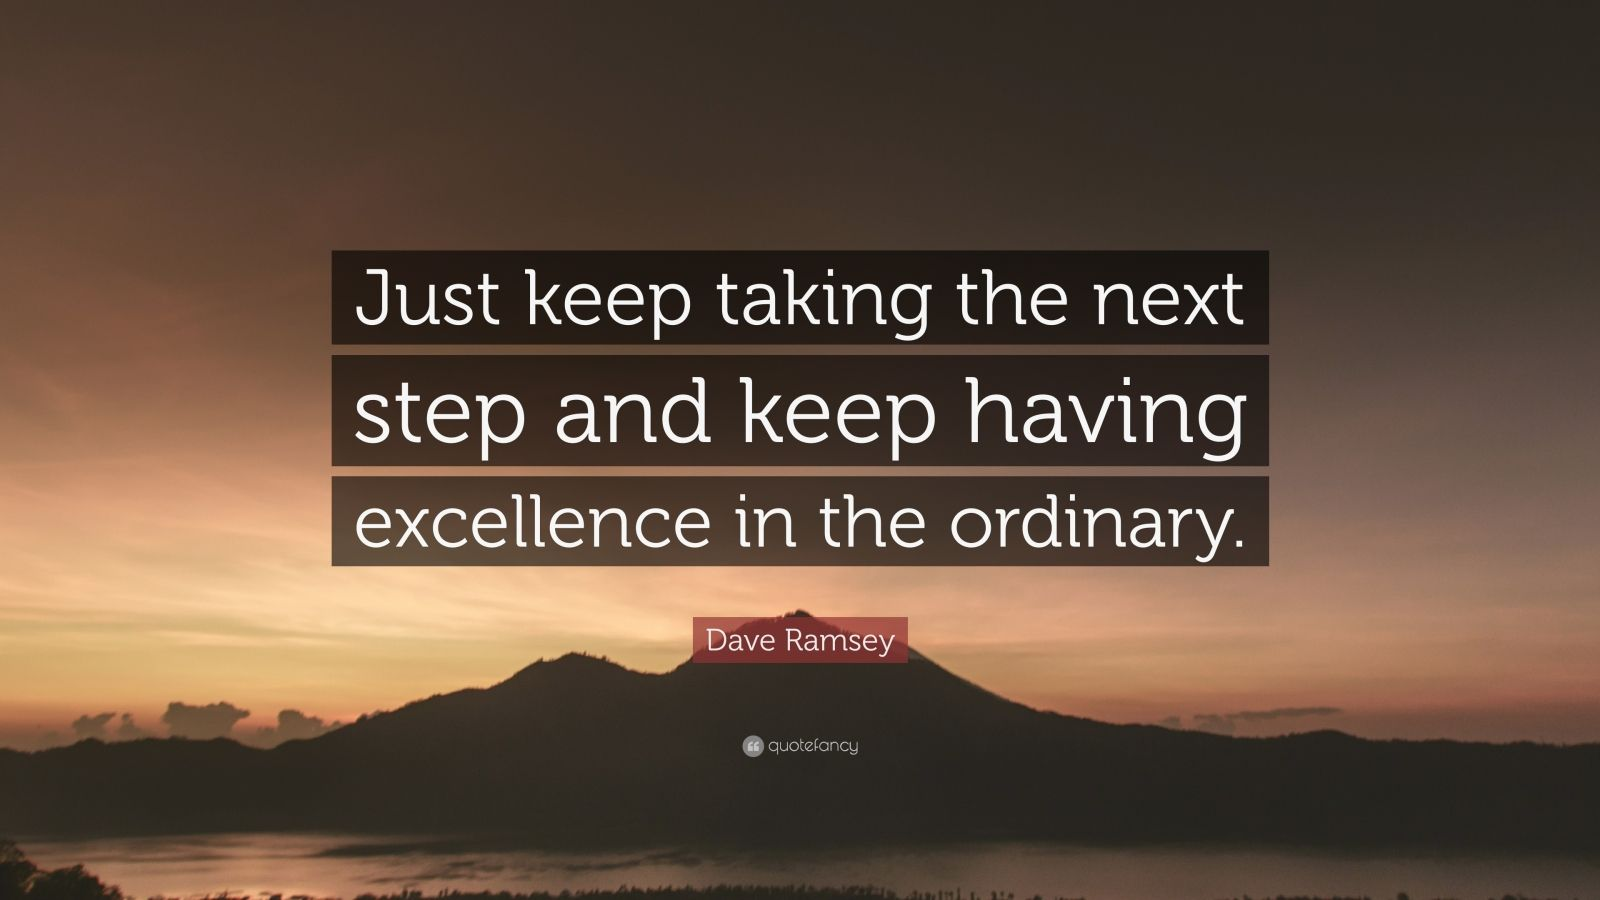 dave ramsey quote   u201cjust keep taking the next step and